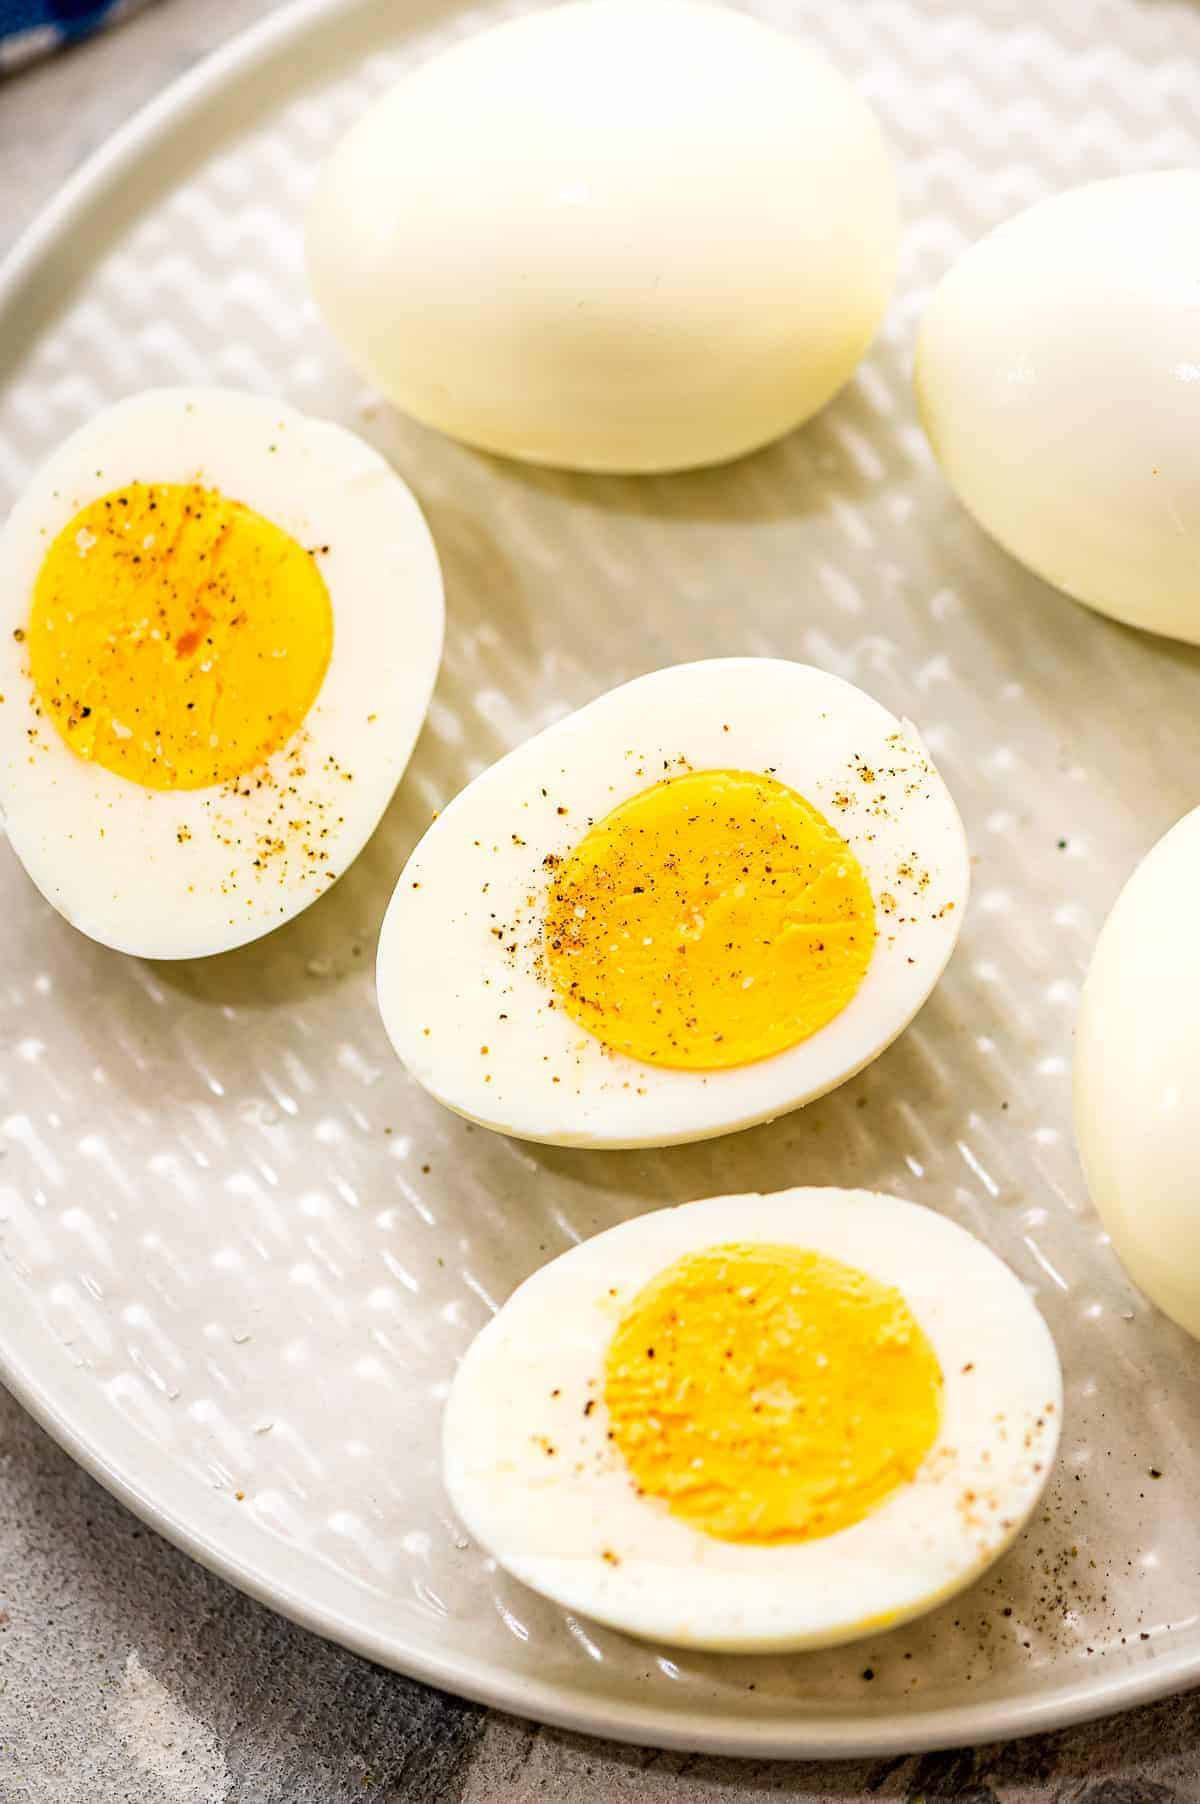 Hard Boiled Eggs cut in half sprinkled with salt and pepper on plate